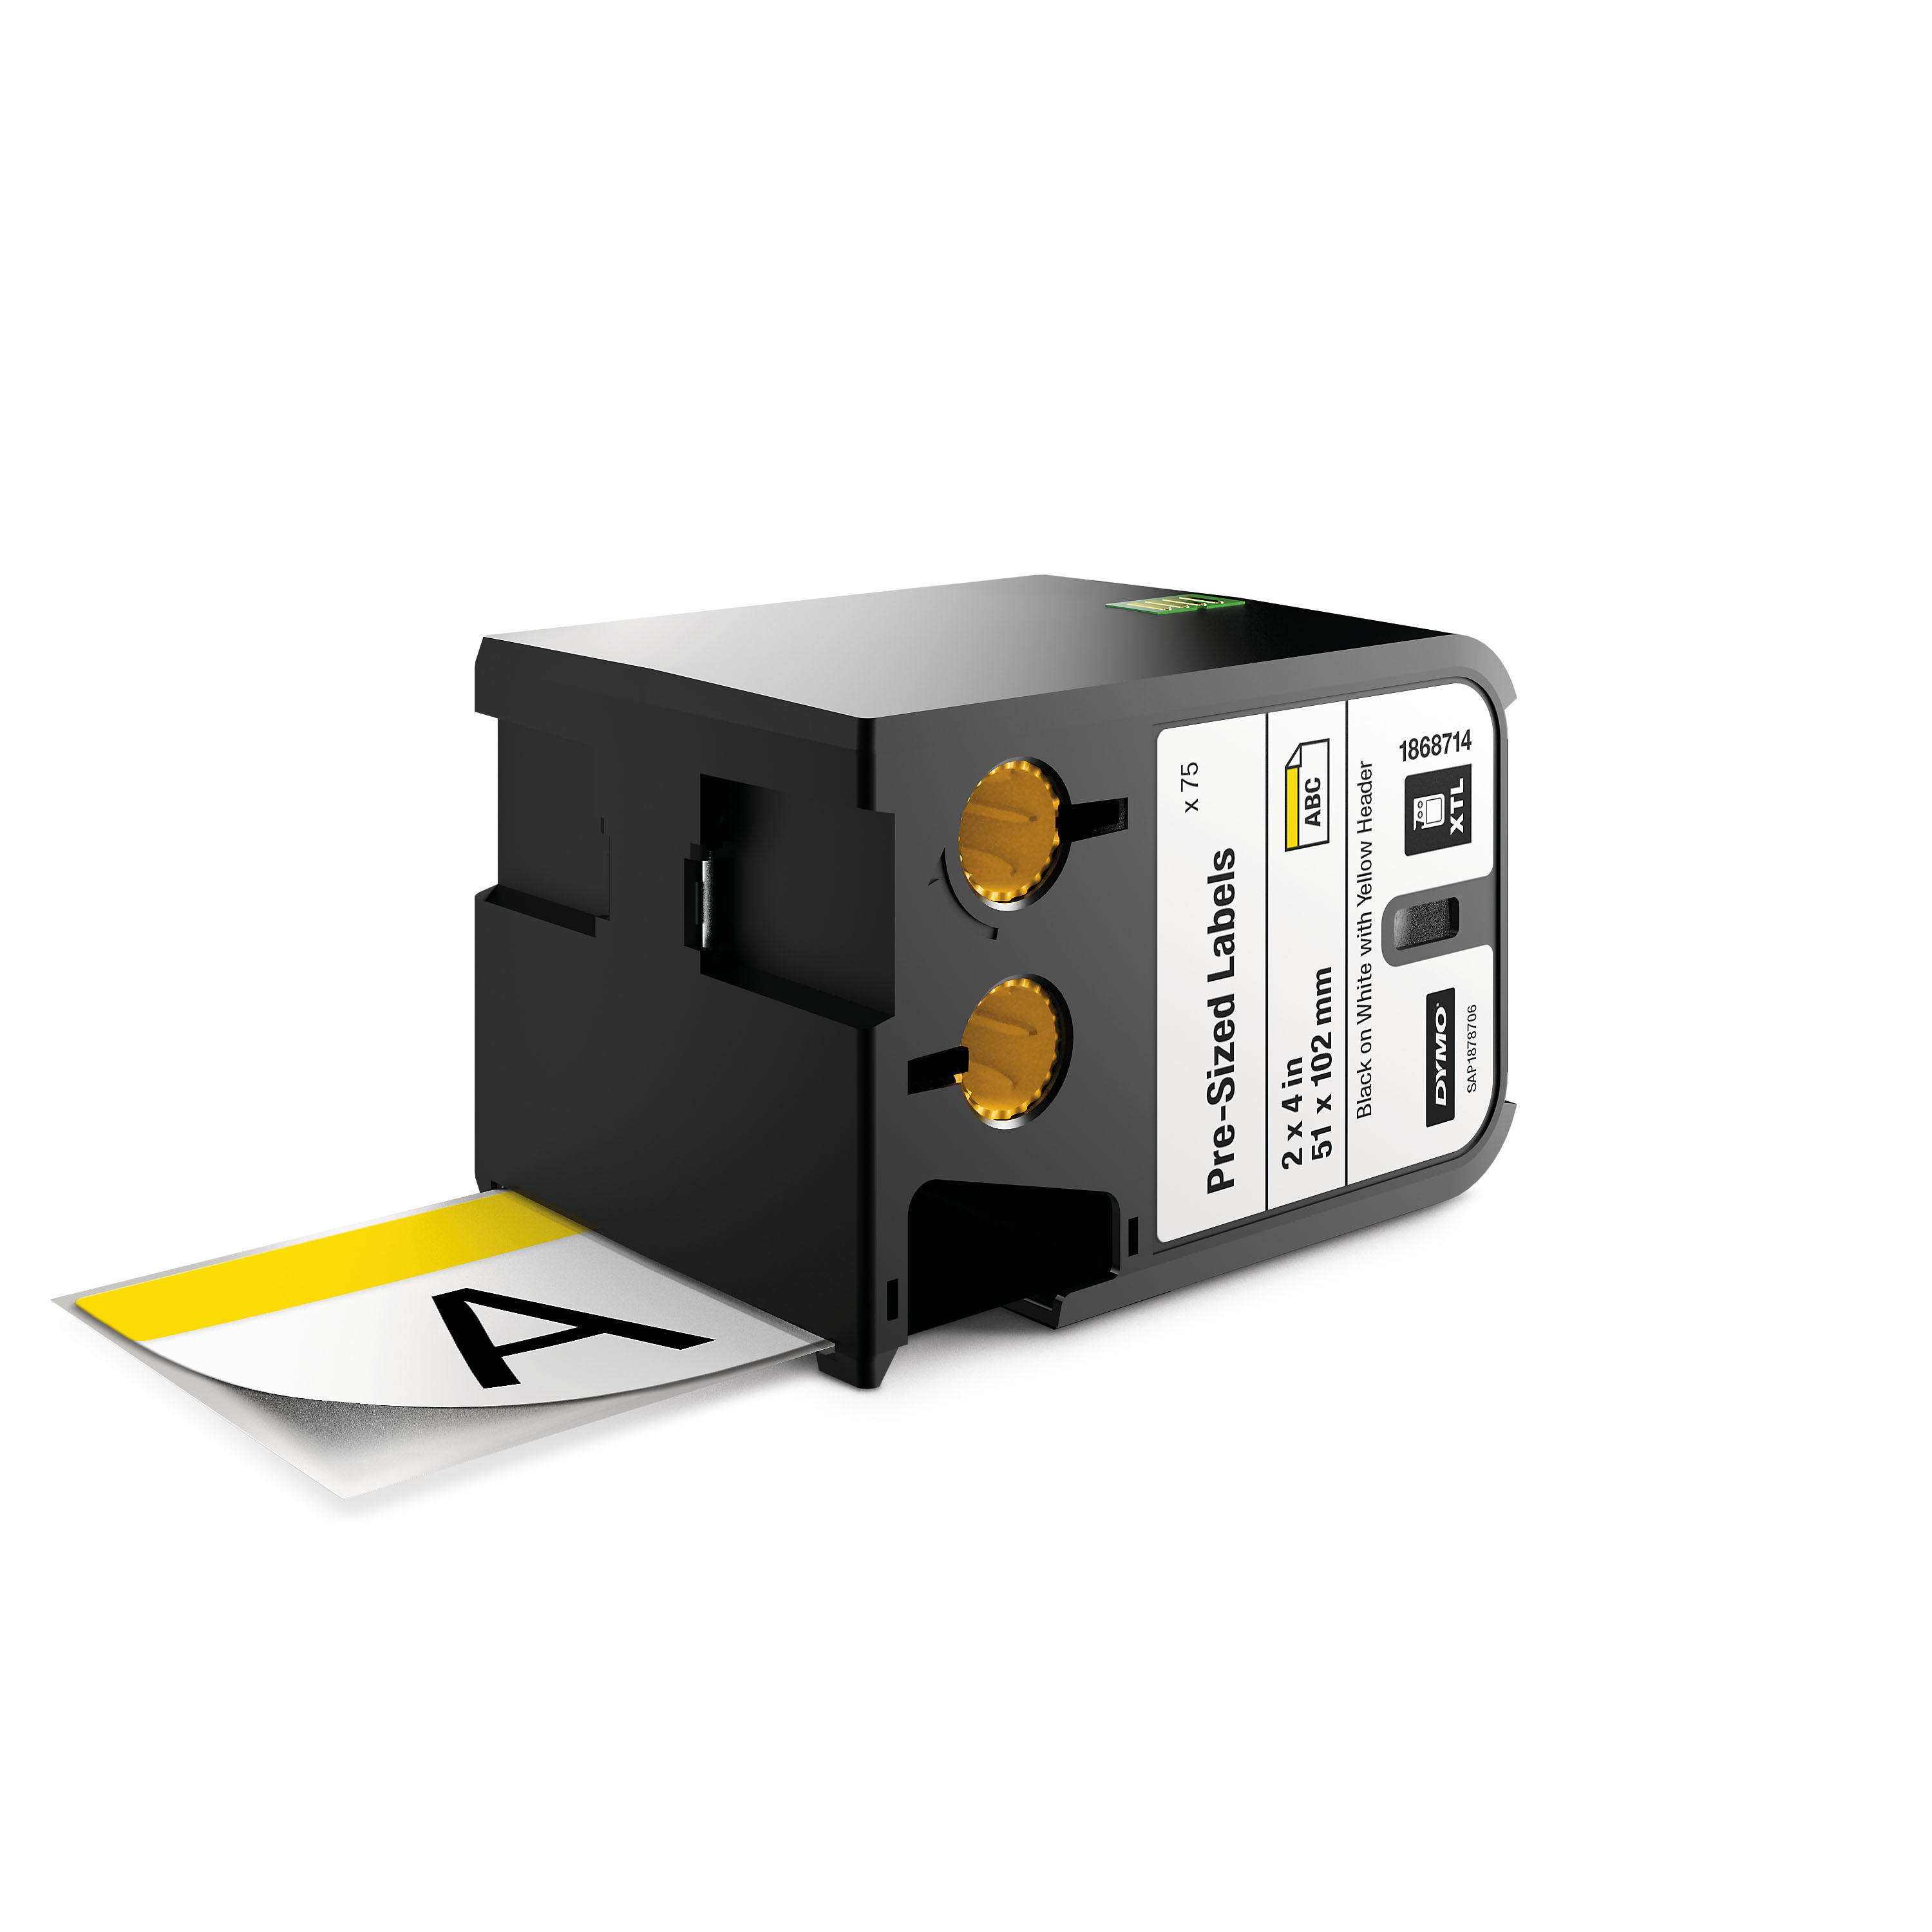 """DYMO XTL Pre-Sized Safety Labels - size 51 x 102mm - 1868714 (2"""" x 4"""") Yellow Track"""